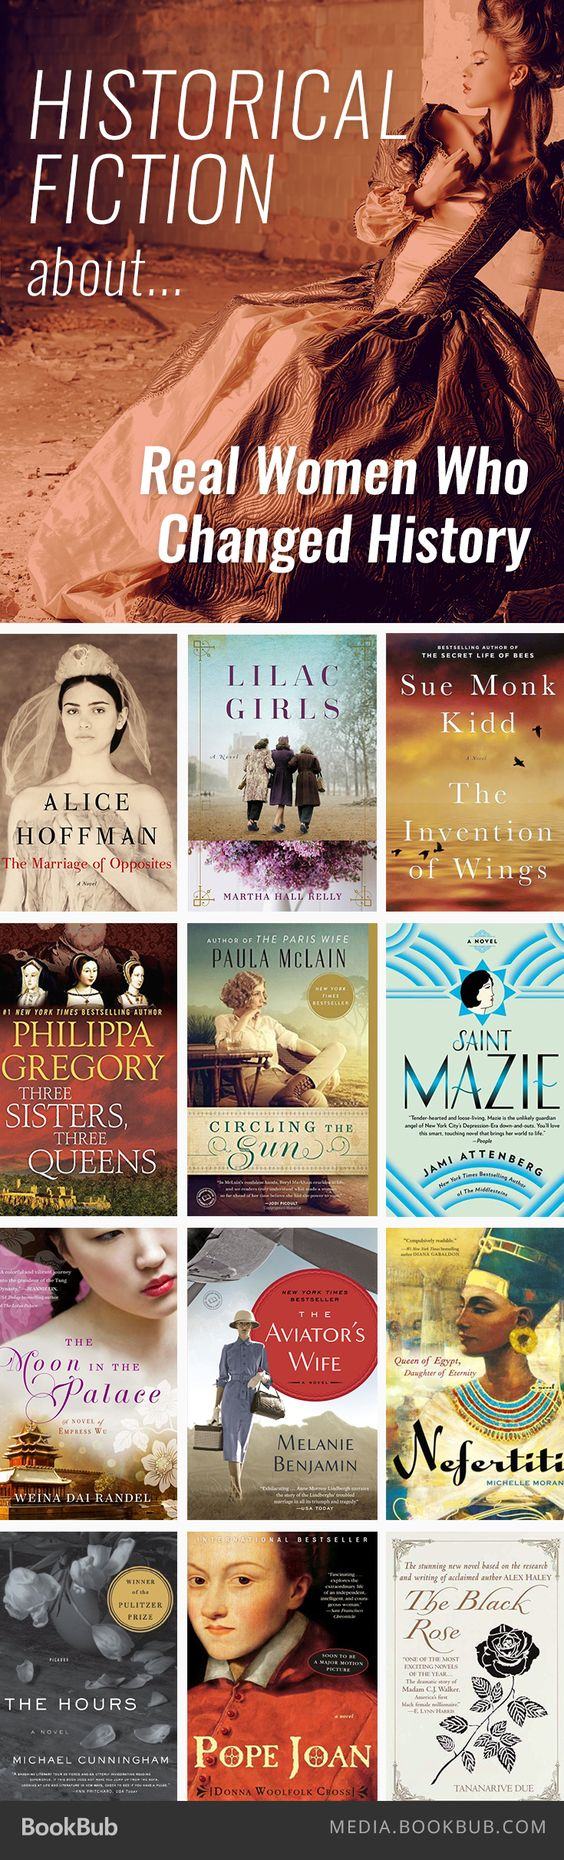 Historical fiction books about women who changed history.: